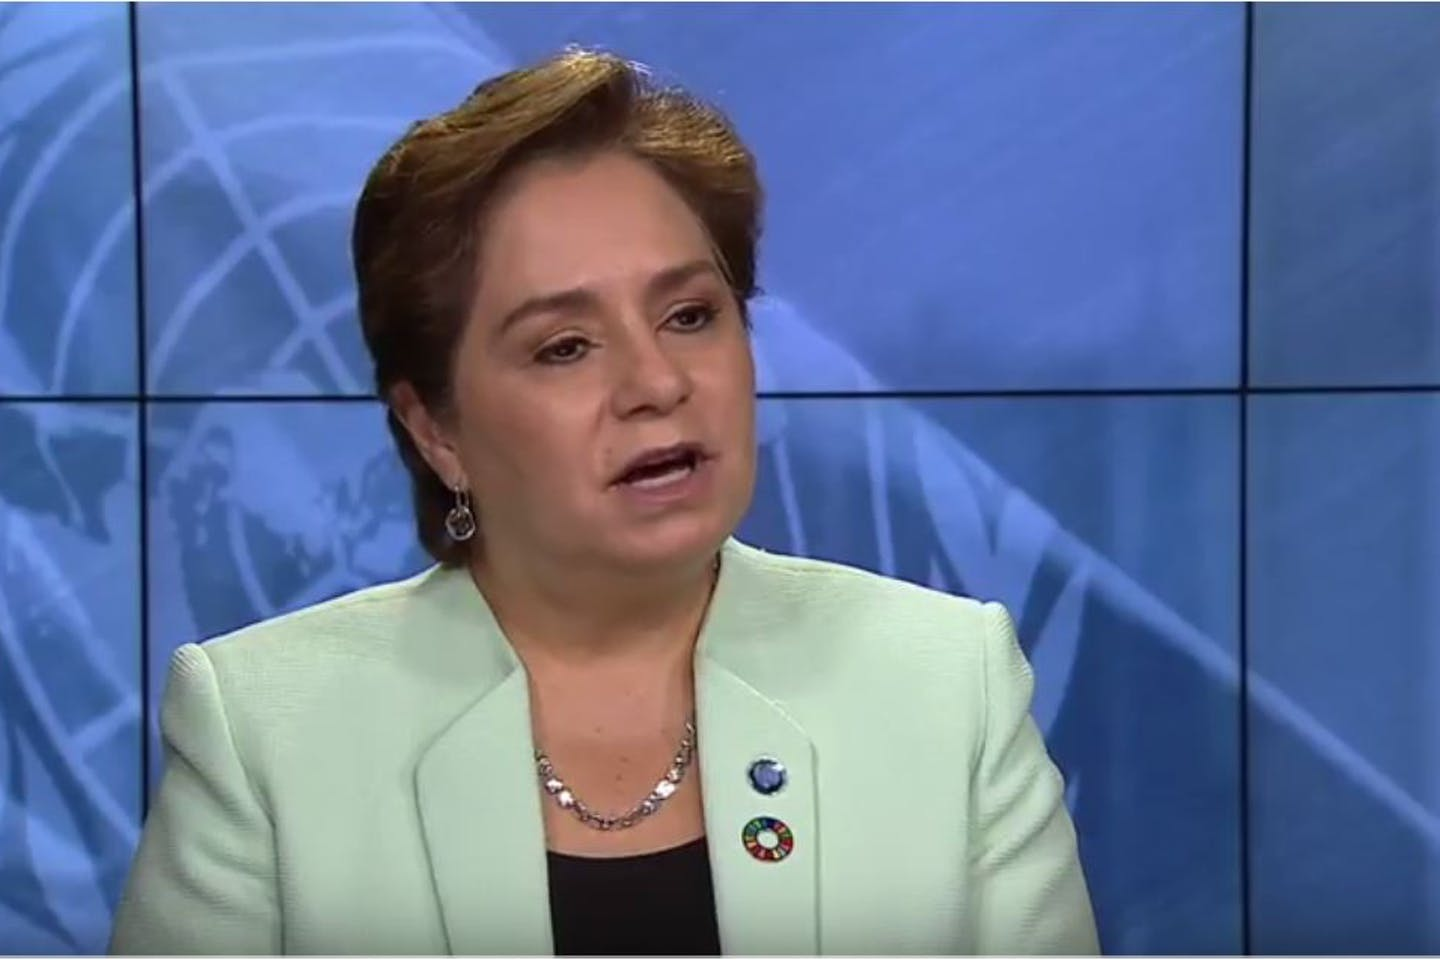 Screen Grab: Patricia Espinosa August 3 interview on Climate Change